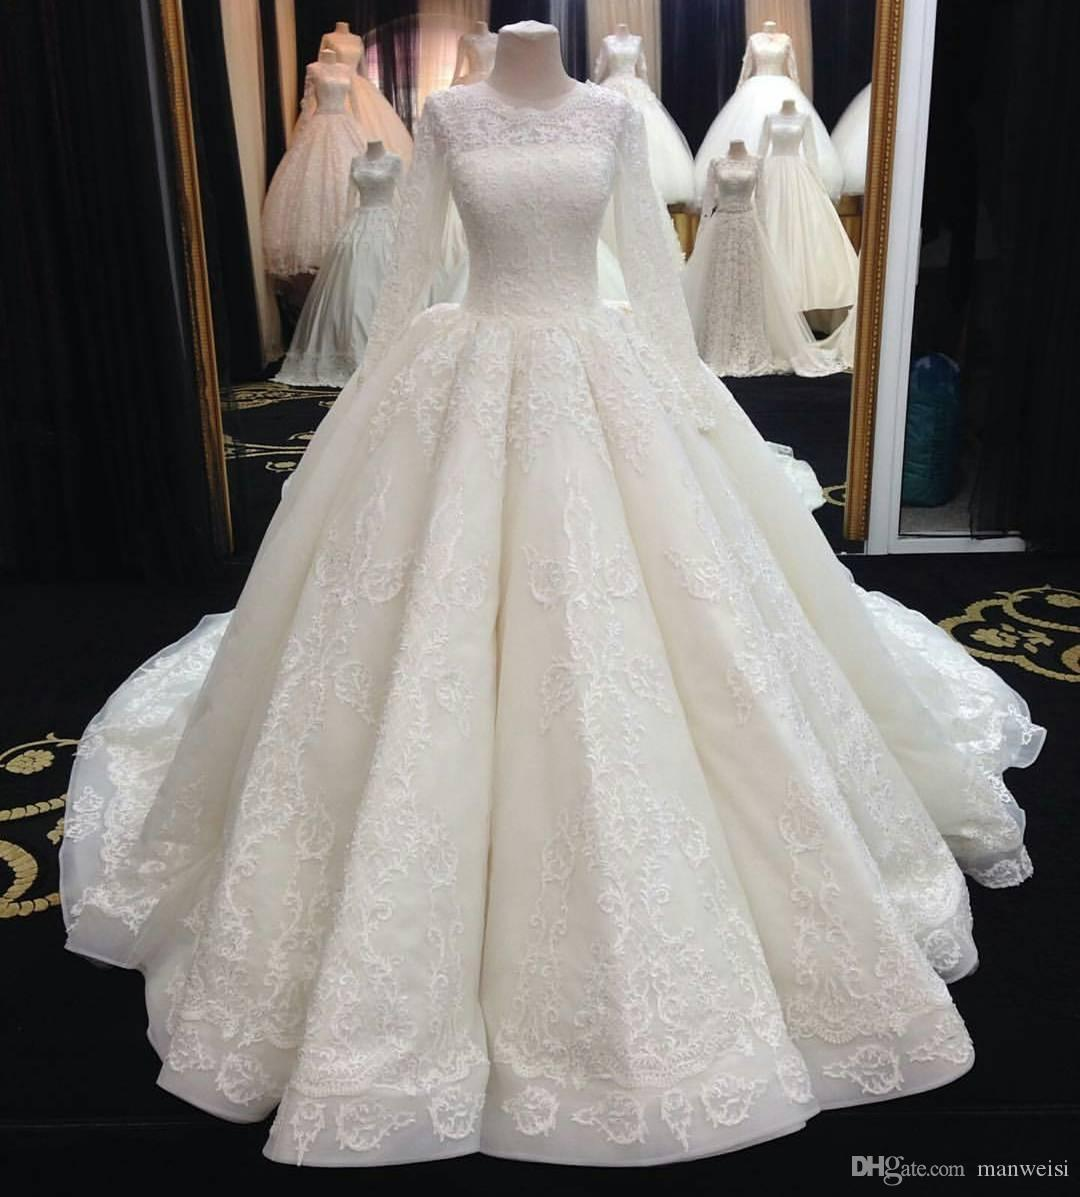 Middle East 2017 Muslim Wedding Dresses Long Sleeve Lace